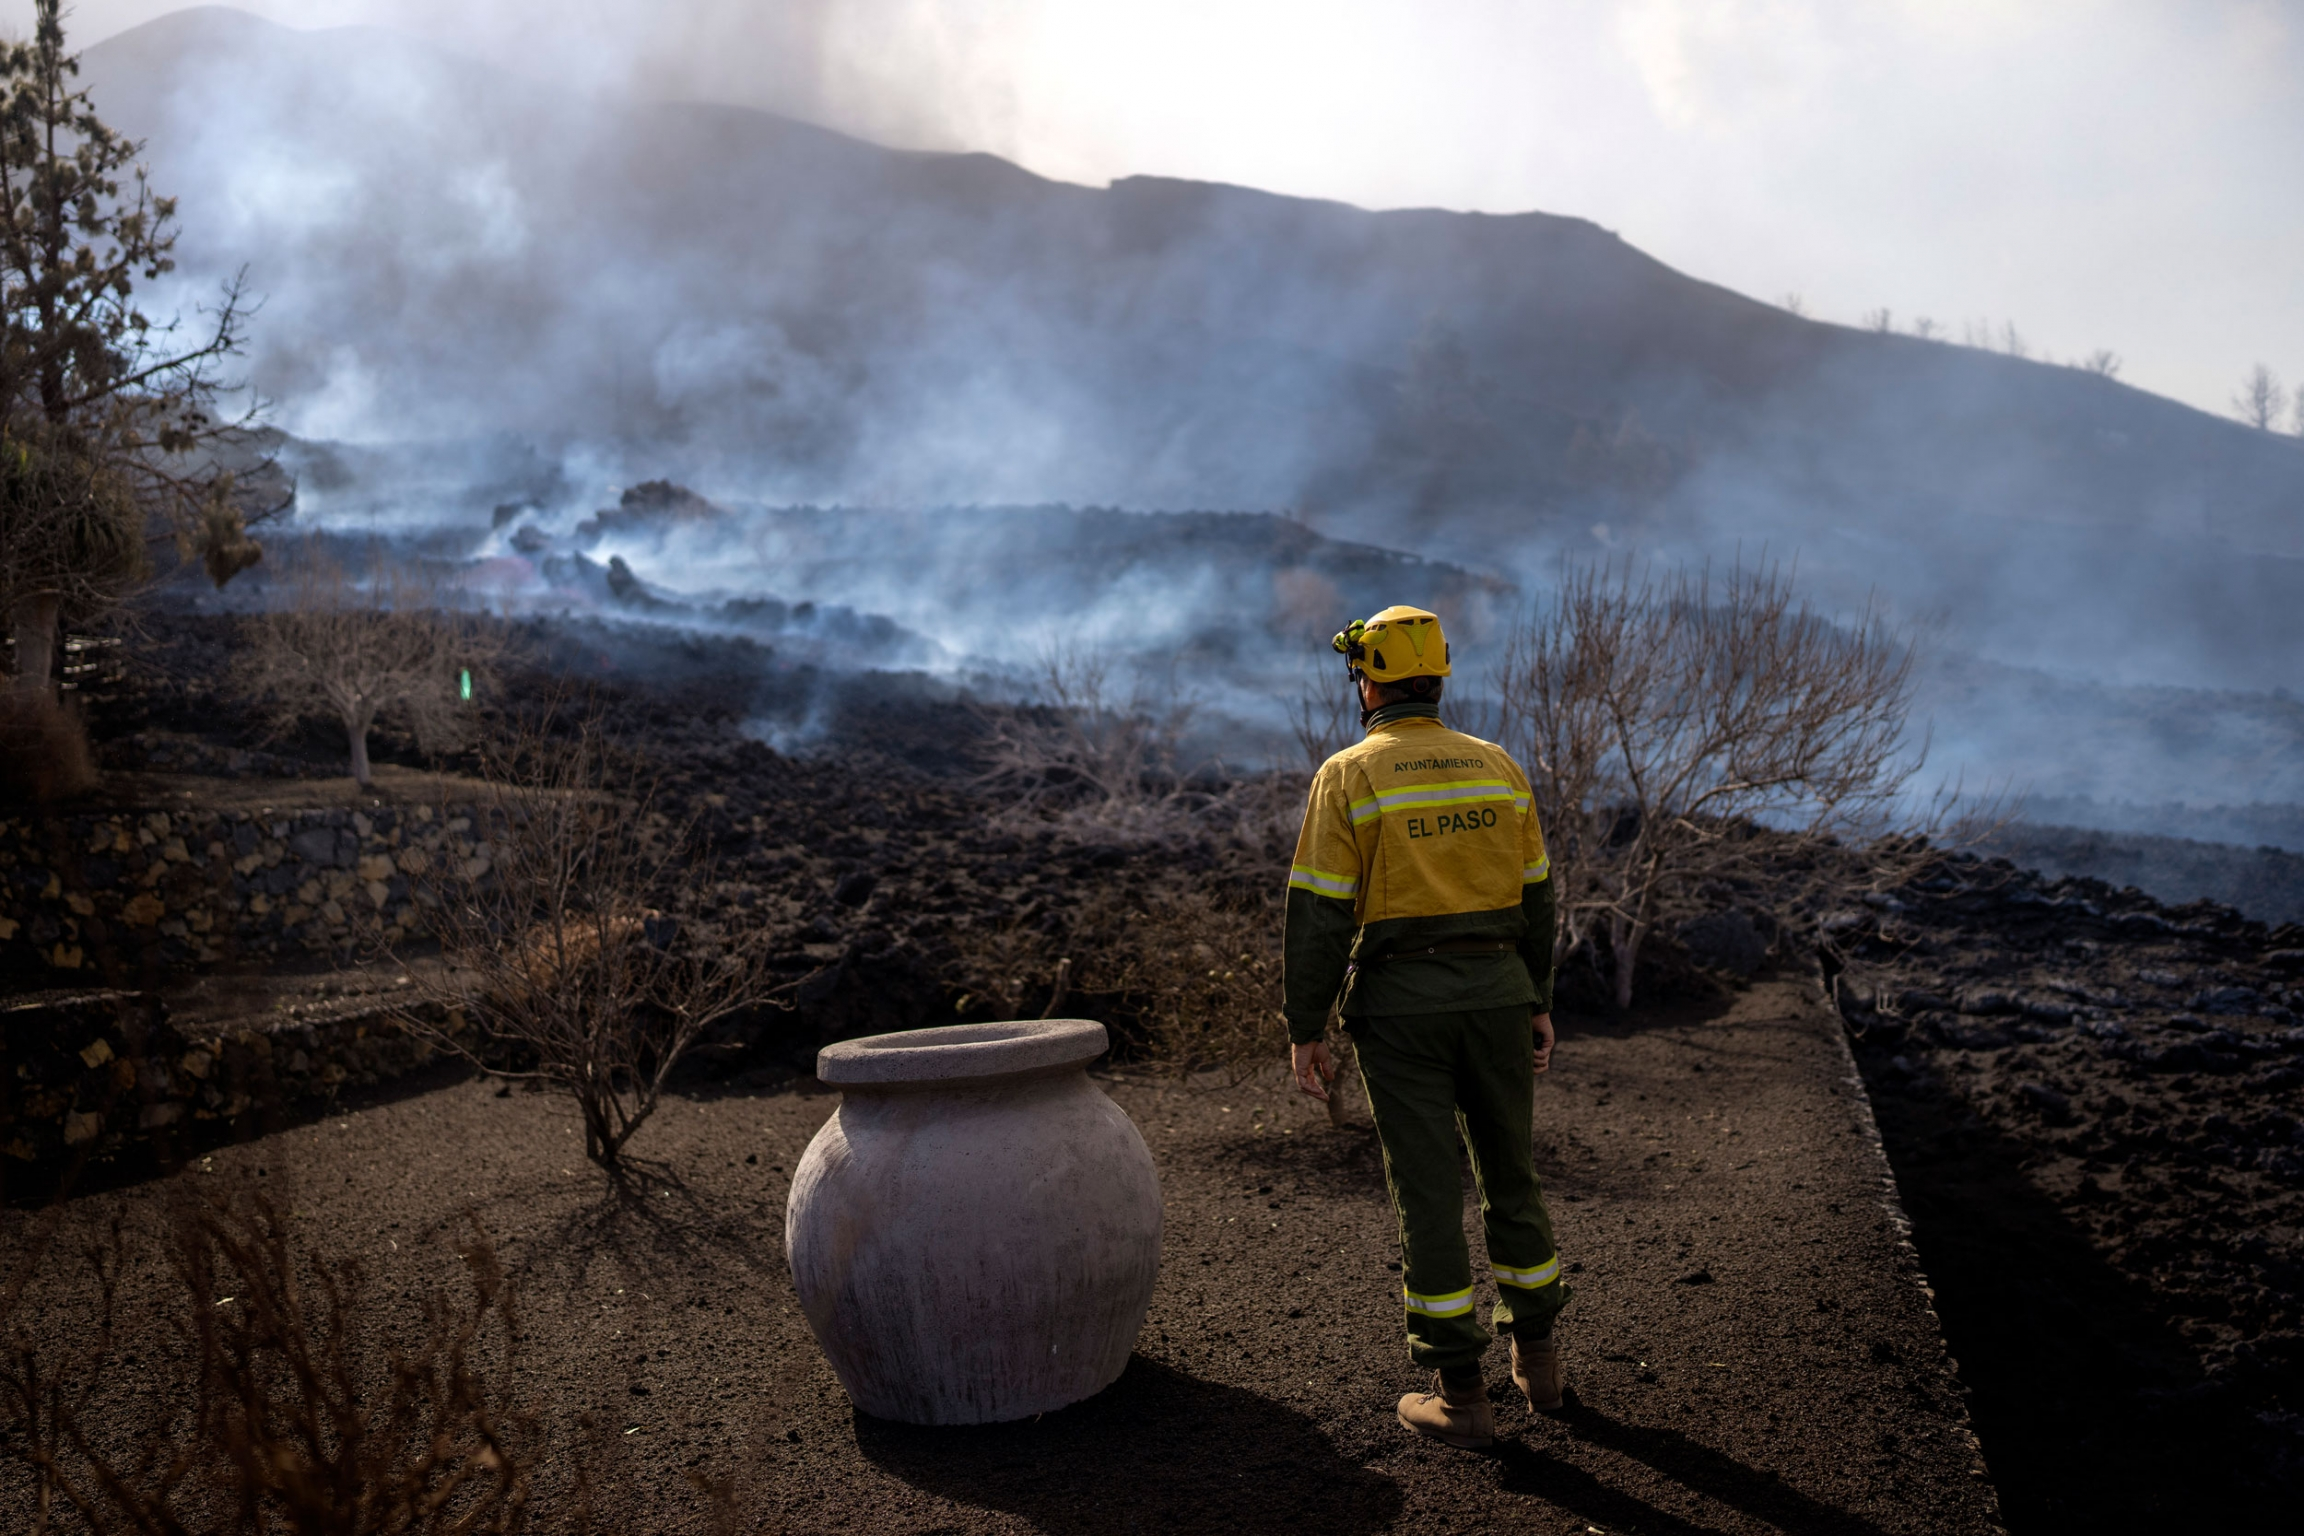 A municipal worker looks as smoke rises after a volcano erupted, near El Paso on the island of La Palma in the Canaries, Spain, Tuesday, Sept. 21, 2021.